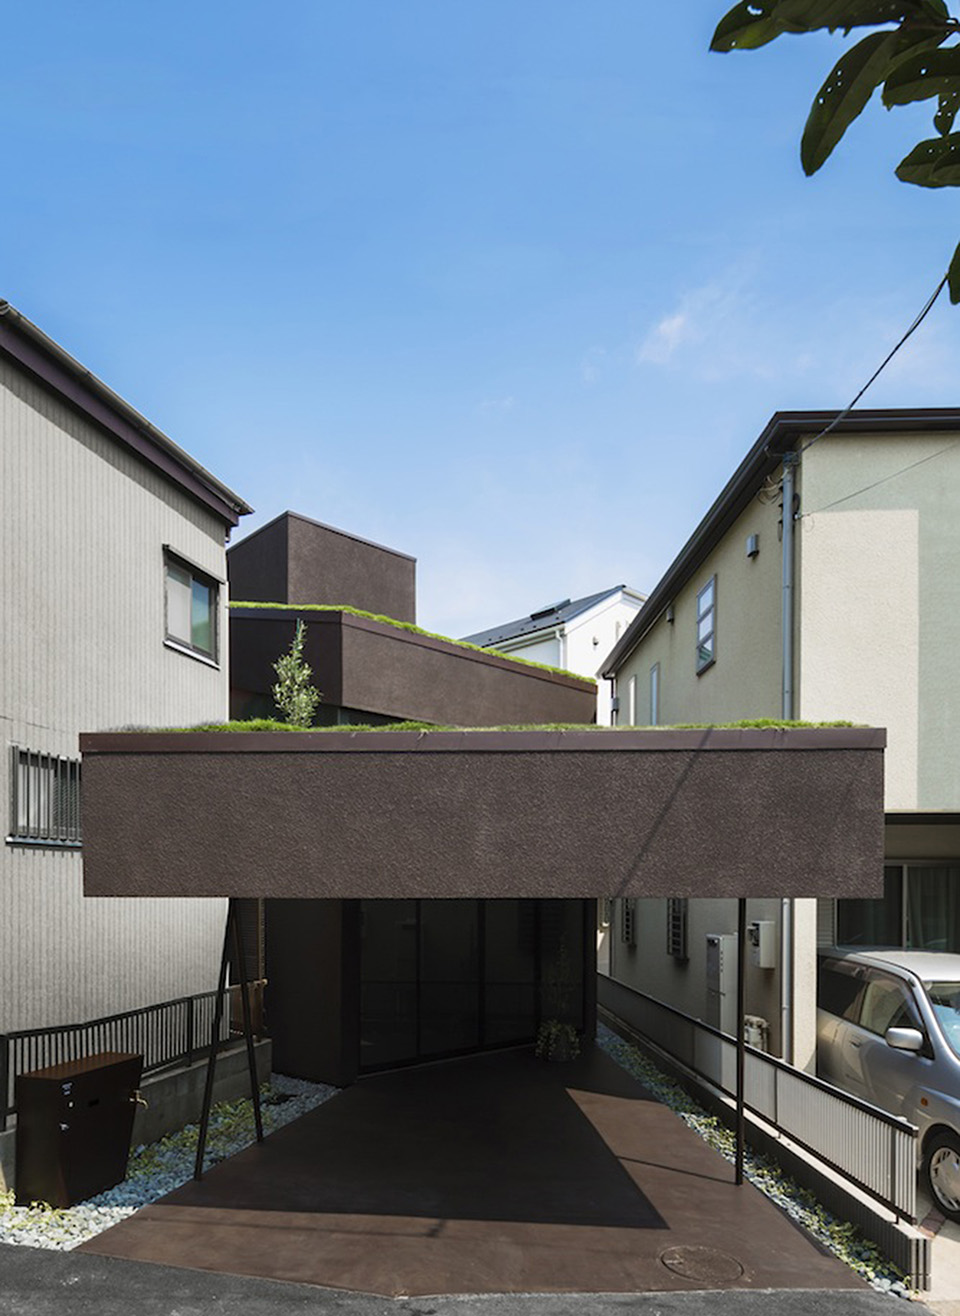 Green Roof Grass Cave House by Makiko Tsukada Architects 8